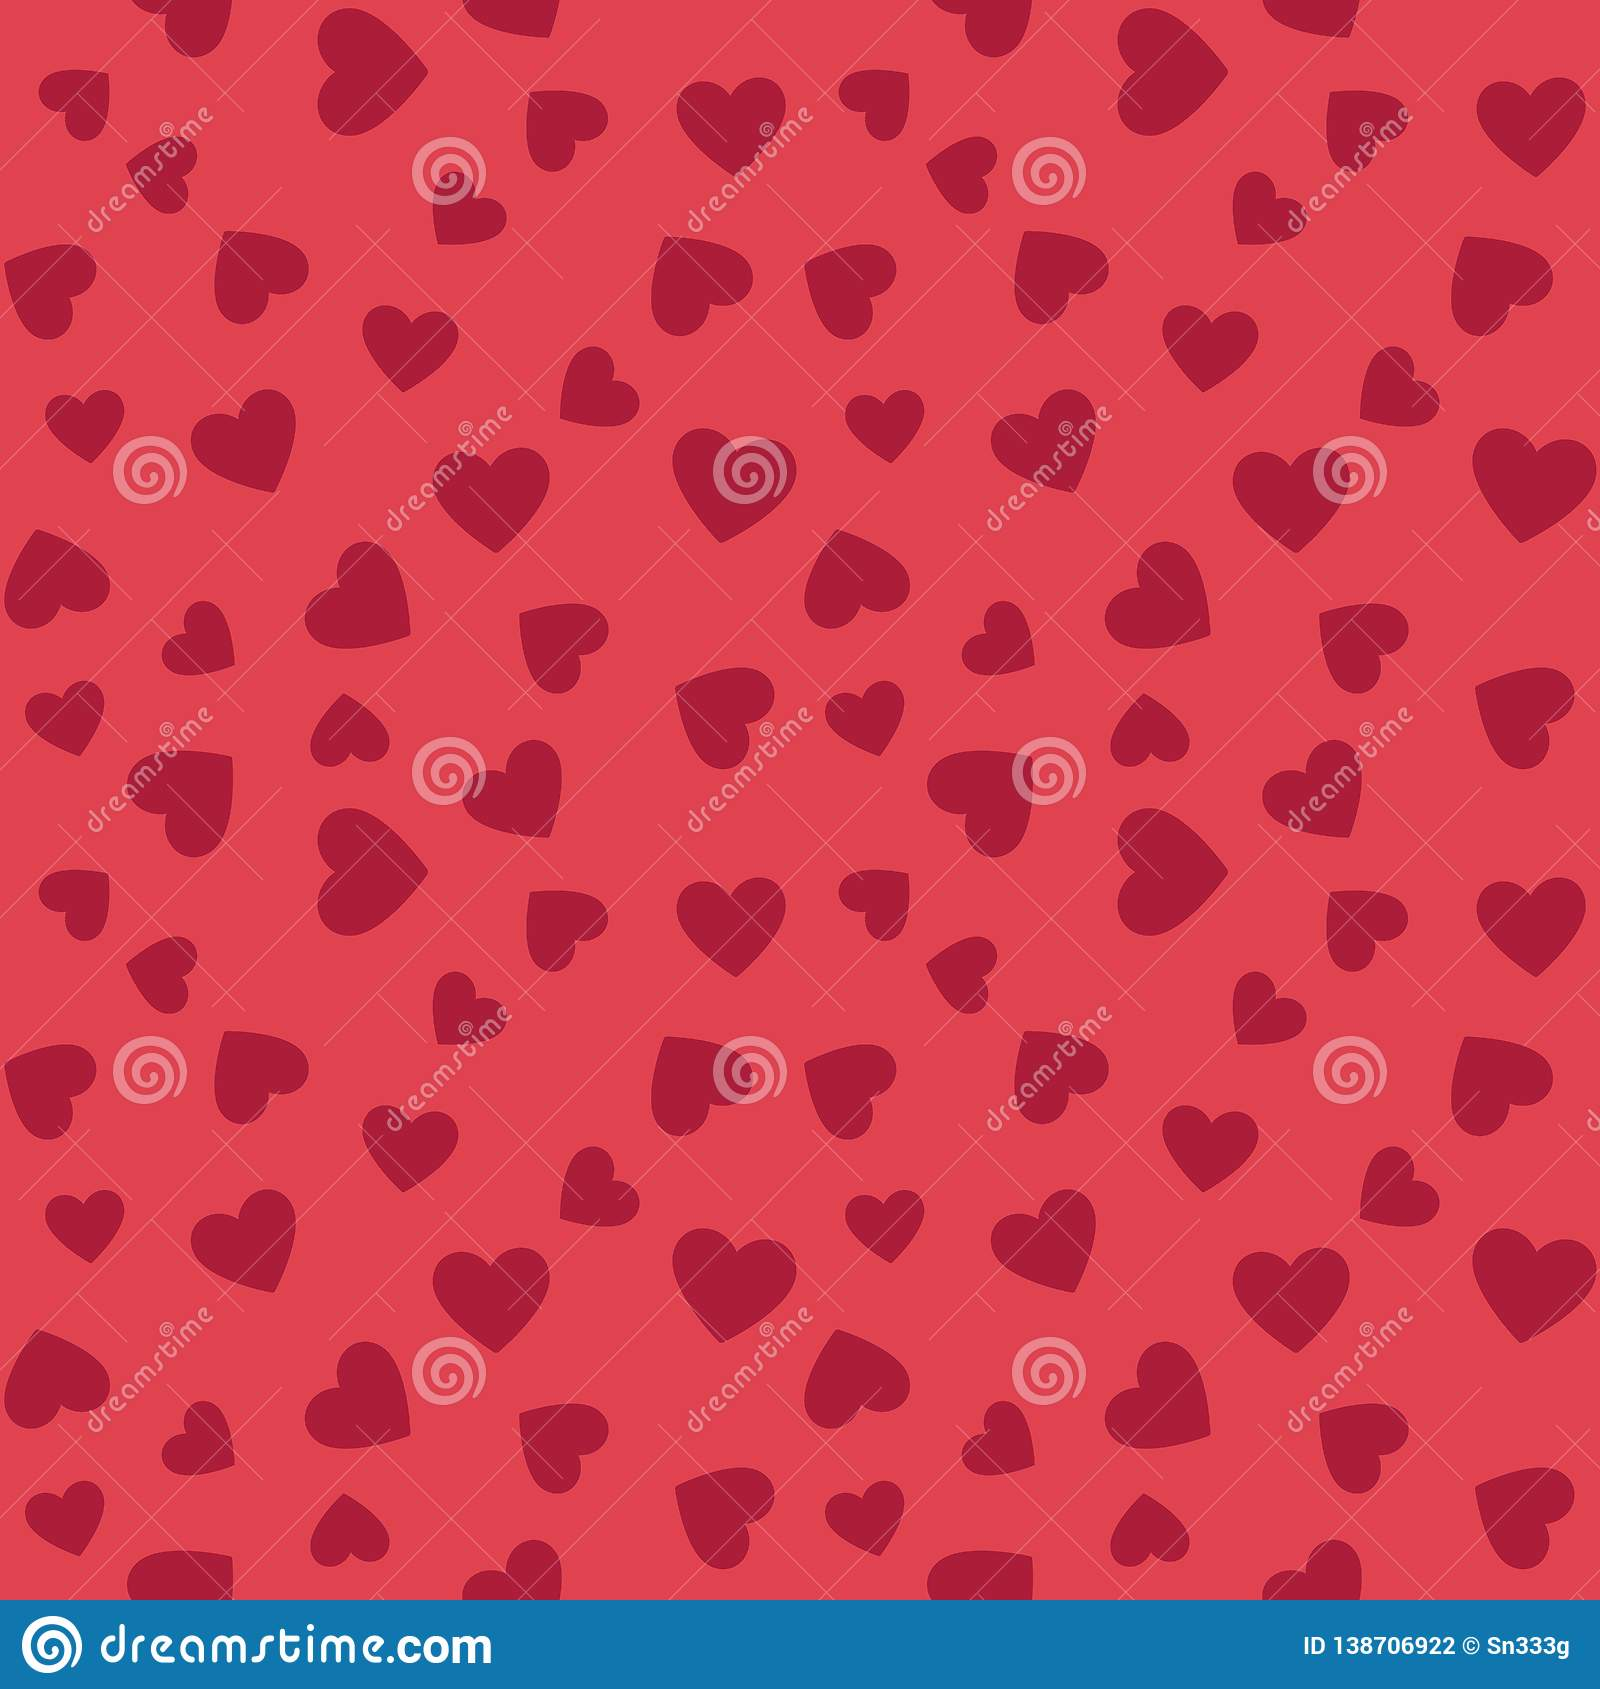 Hearts vector flat seamless pattern. Valentines background